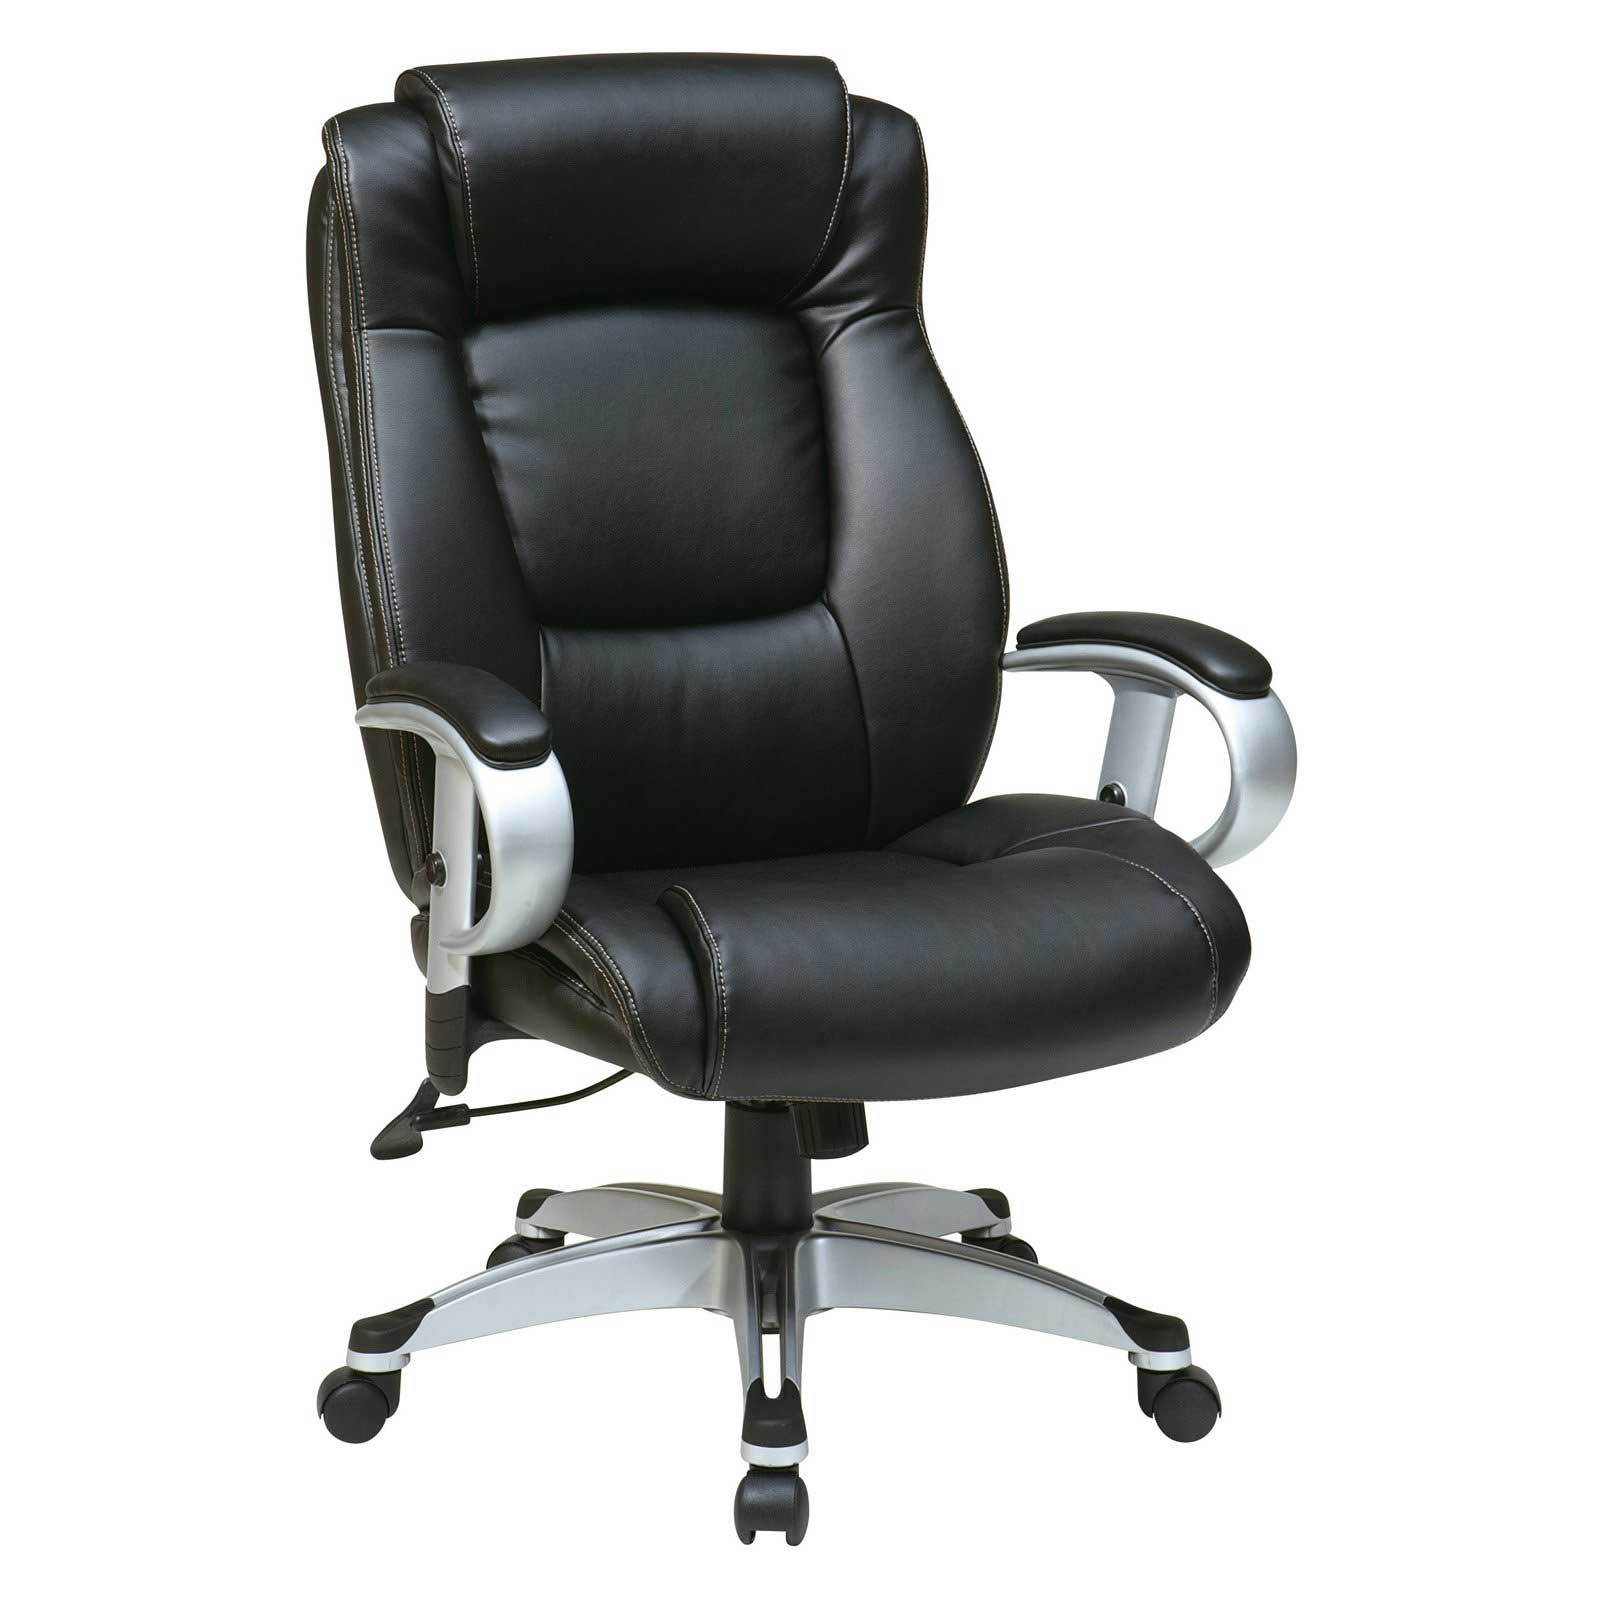 office chair with adjustable arms farm tables and chairs height for home